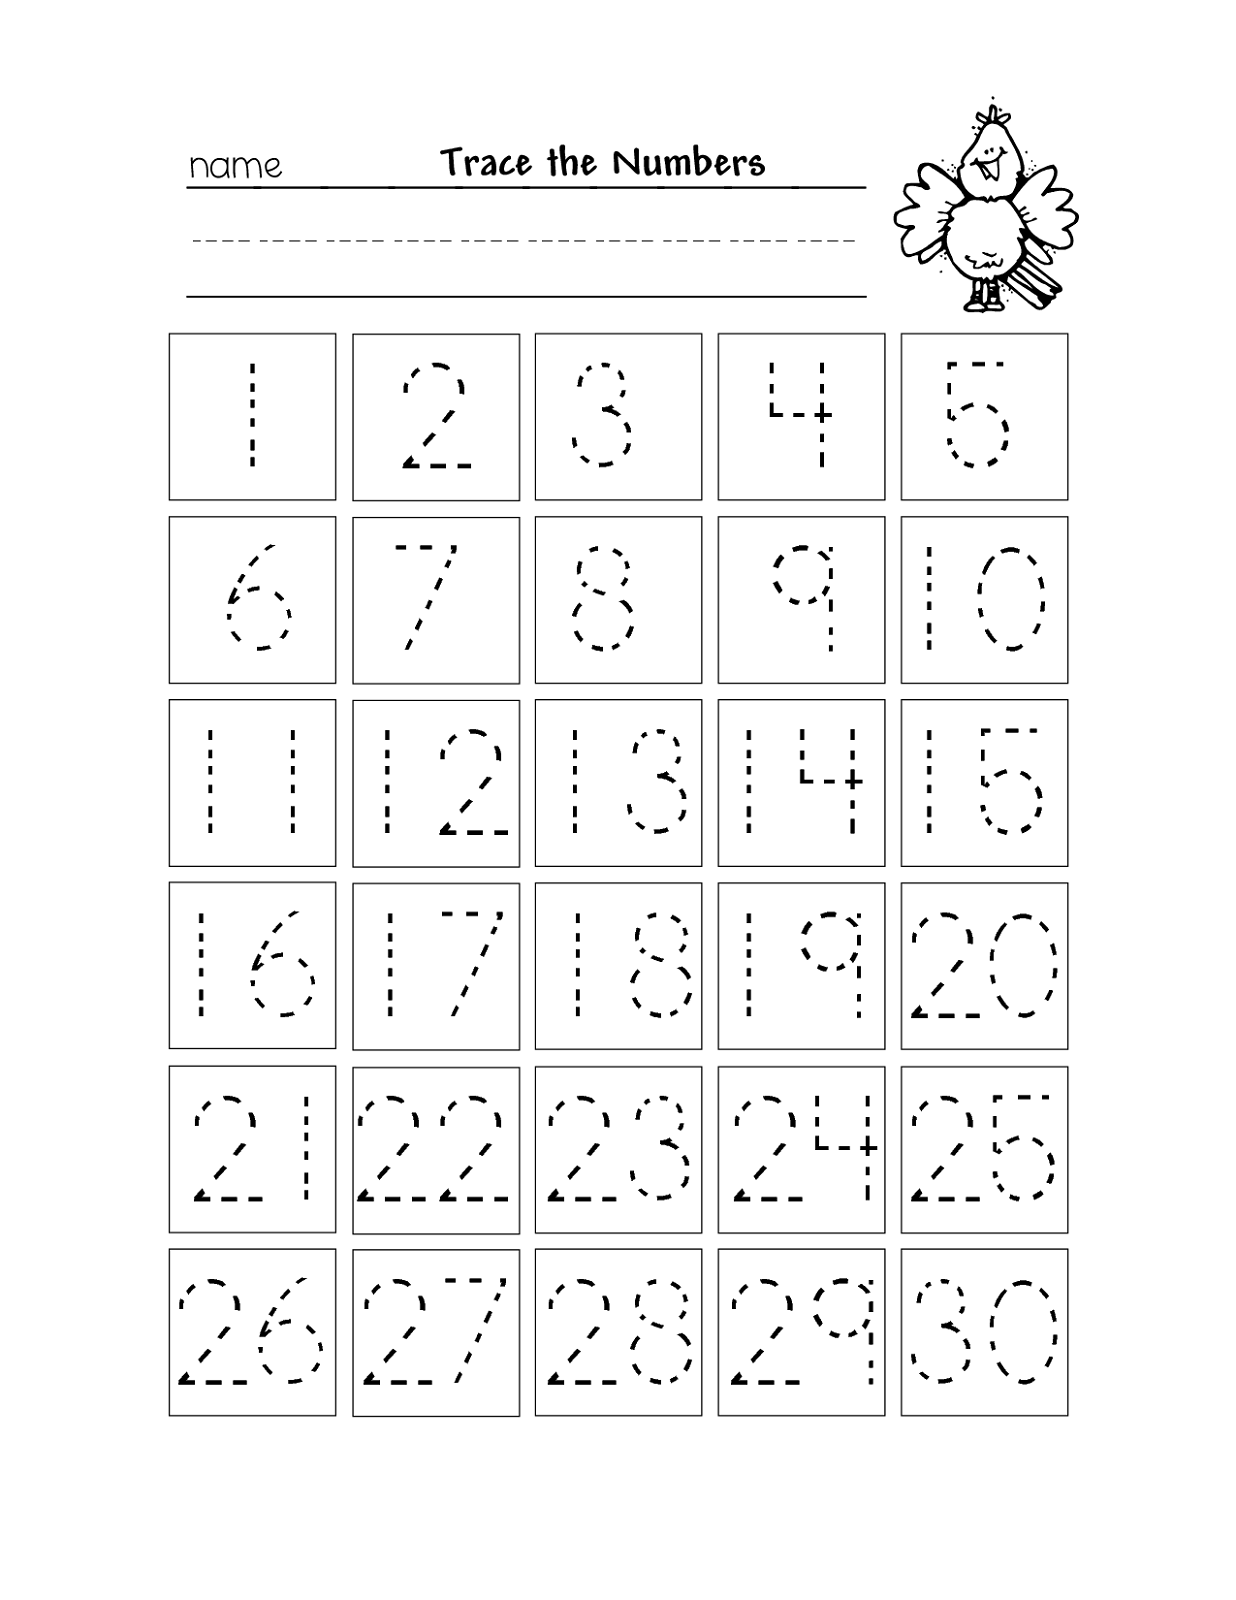 Trace the Numbers 1-30 | Kiddo Shelter | Kids Worksheets Printable ...